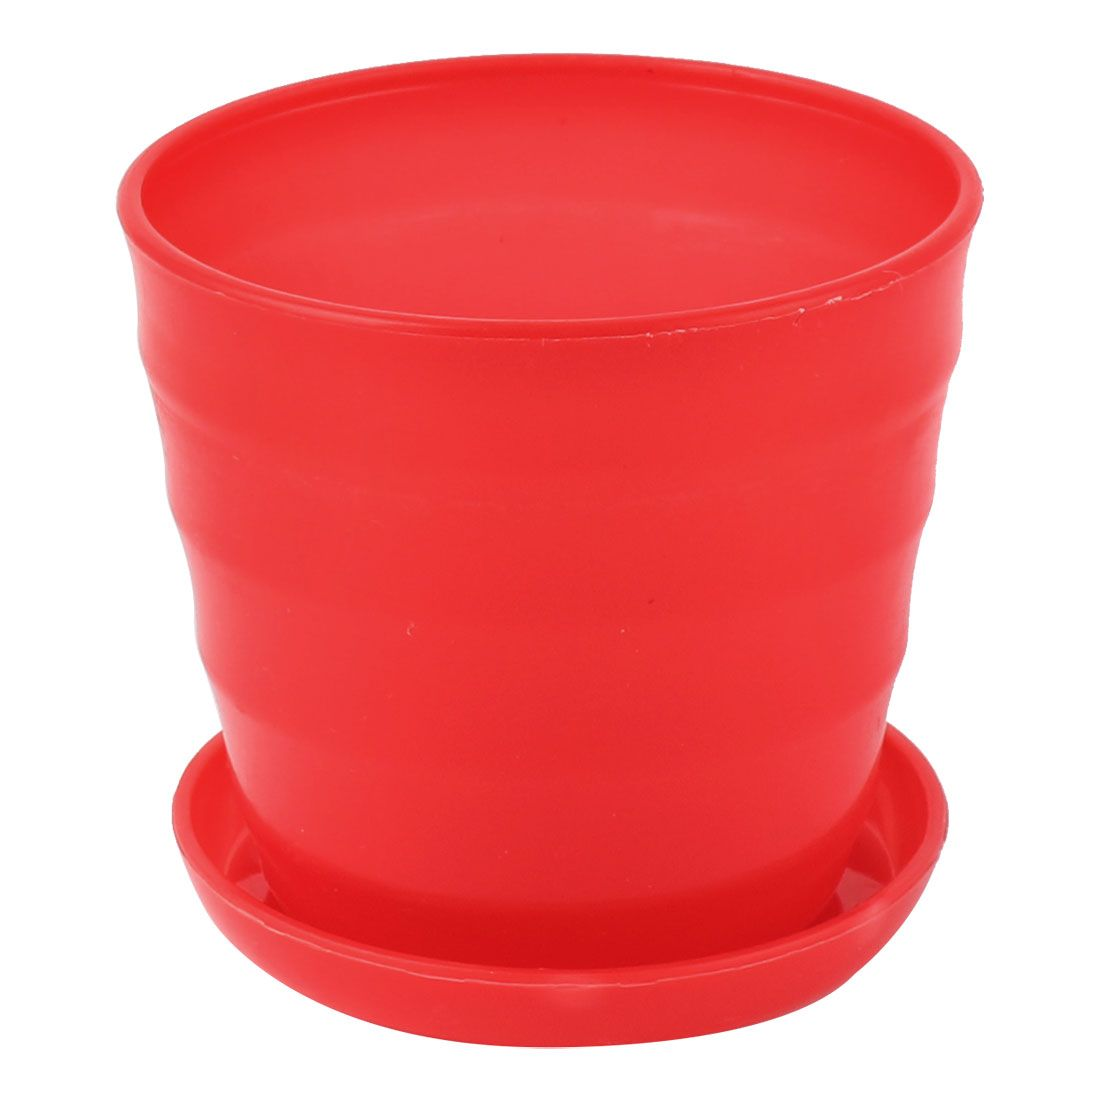 uxcell 9cm dia red plastic stripe pattern home garden office plant